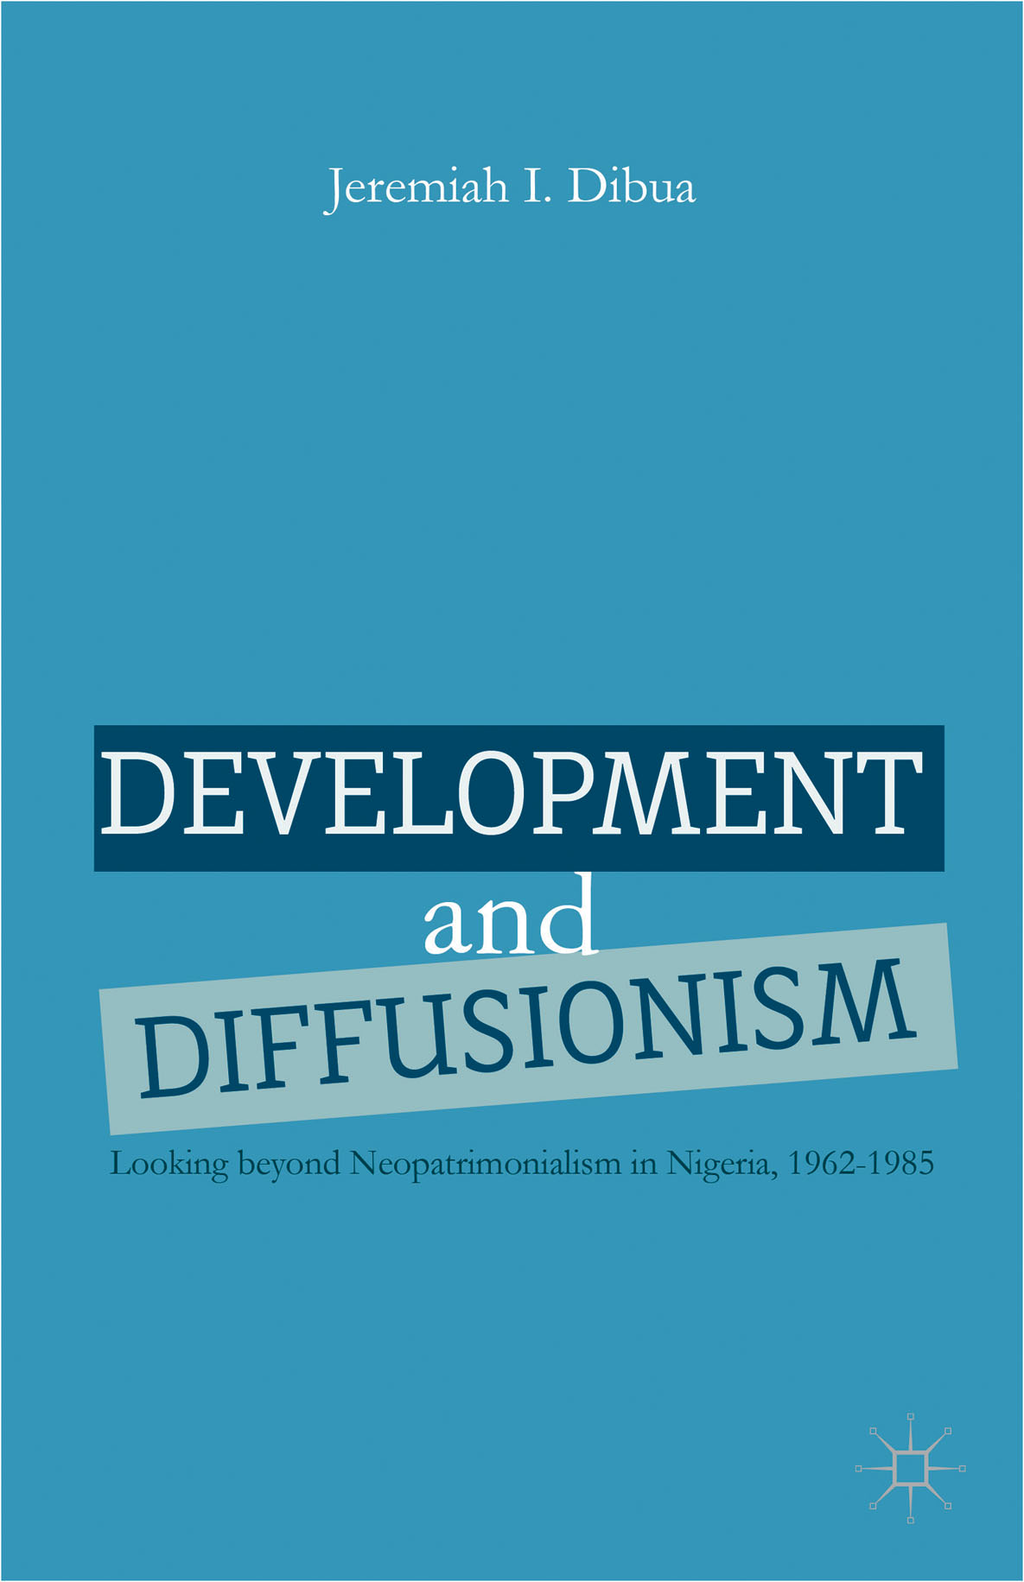 Development and Diffusionism Looking beyond Neopatrimonialism in Nigeria,  1962-1985